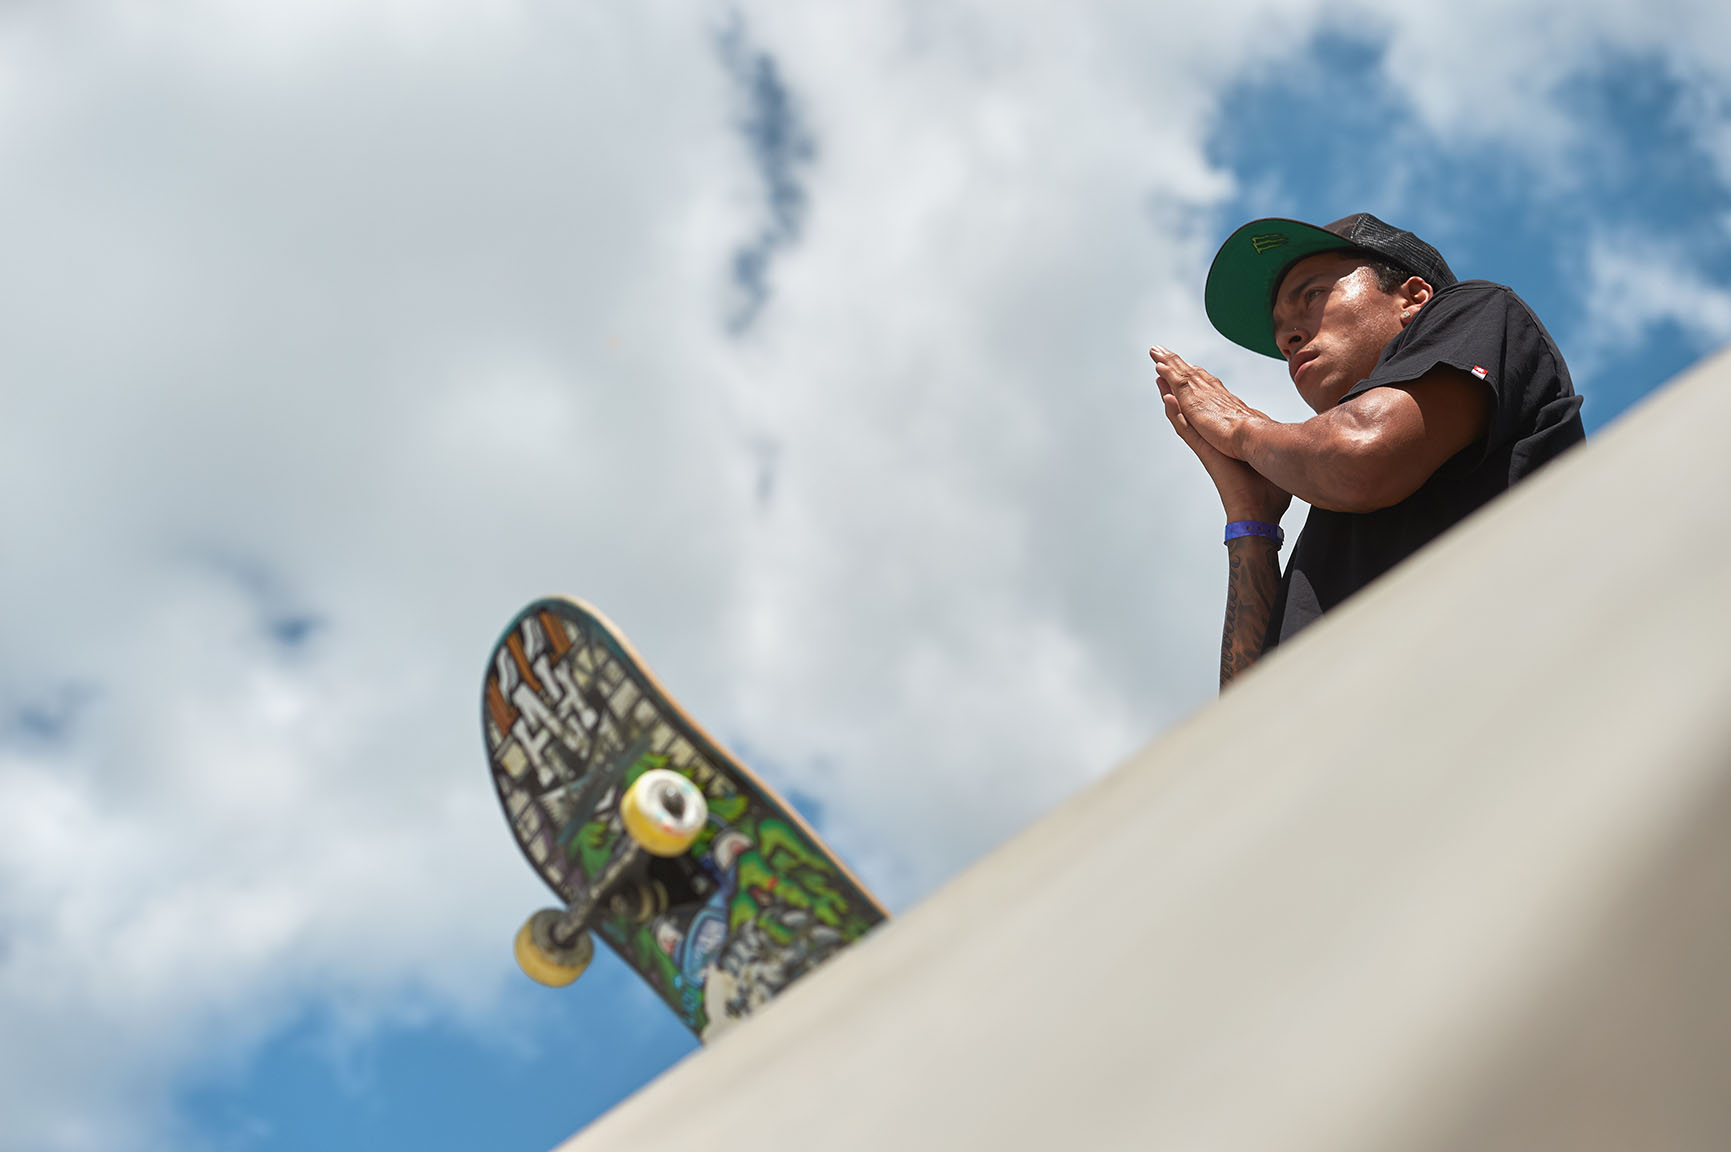 Skateboard Street win was child's play for Nyjah Huston on Sunday at X Games Austin 2015. Every win takes a lot of hard work and practice on the course and a lot of preparation, Huston said. I'm stoked that I was able to put down those first two runs and not put too much pressure on myself.